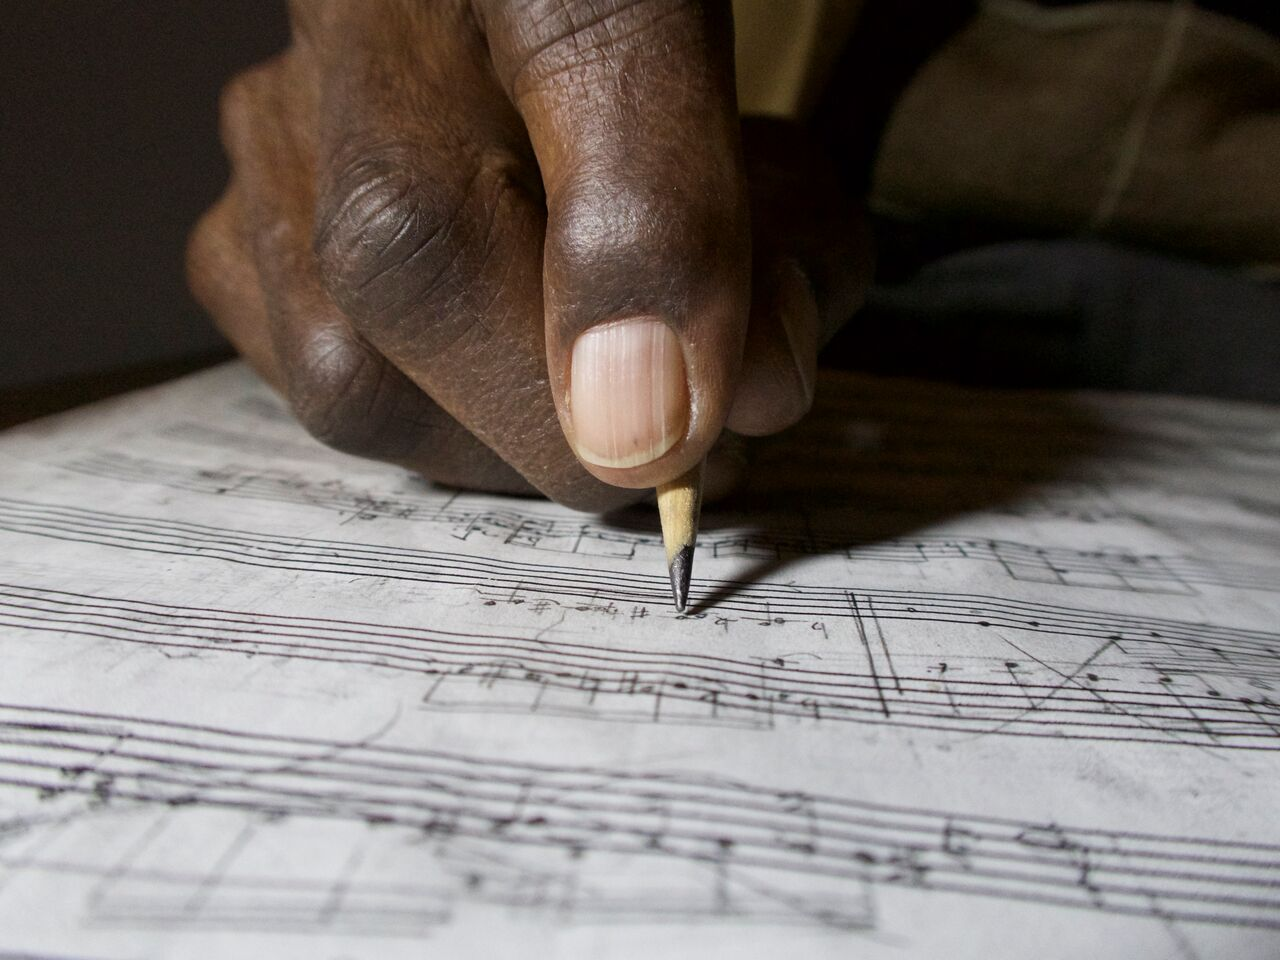 George Walker's hand holding a pencil and writing on a page of music notation paper.